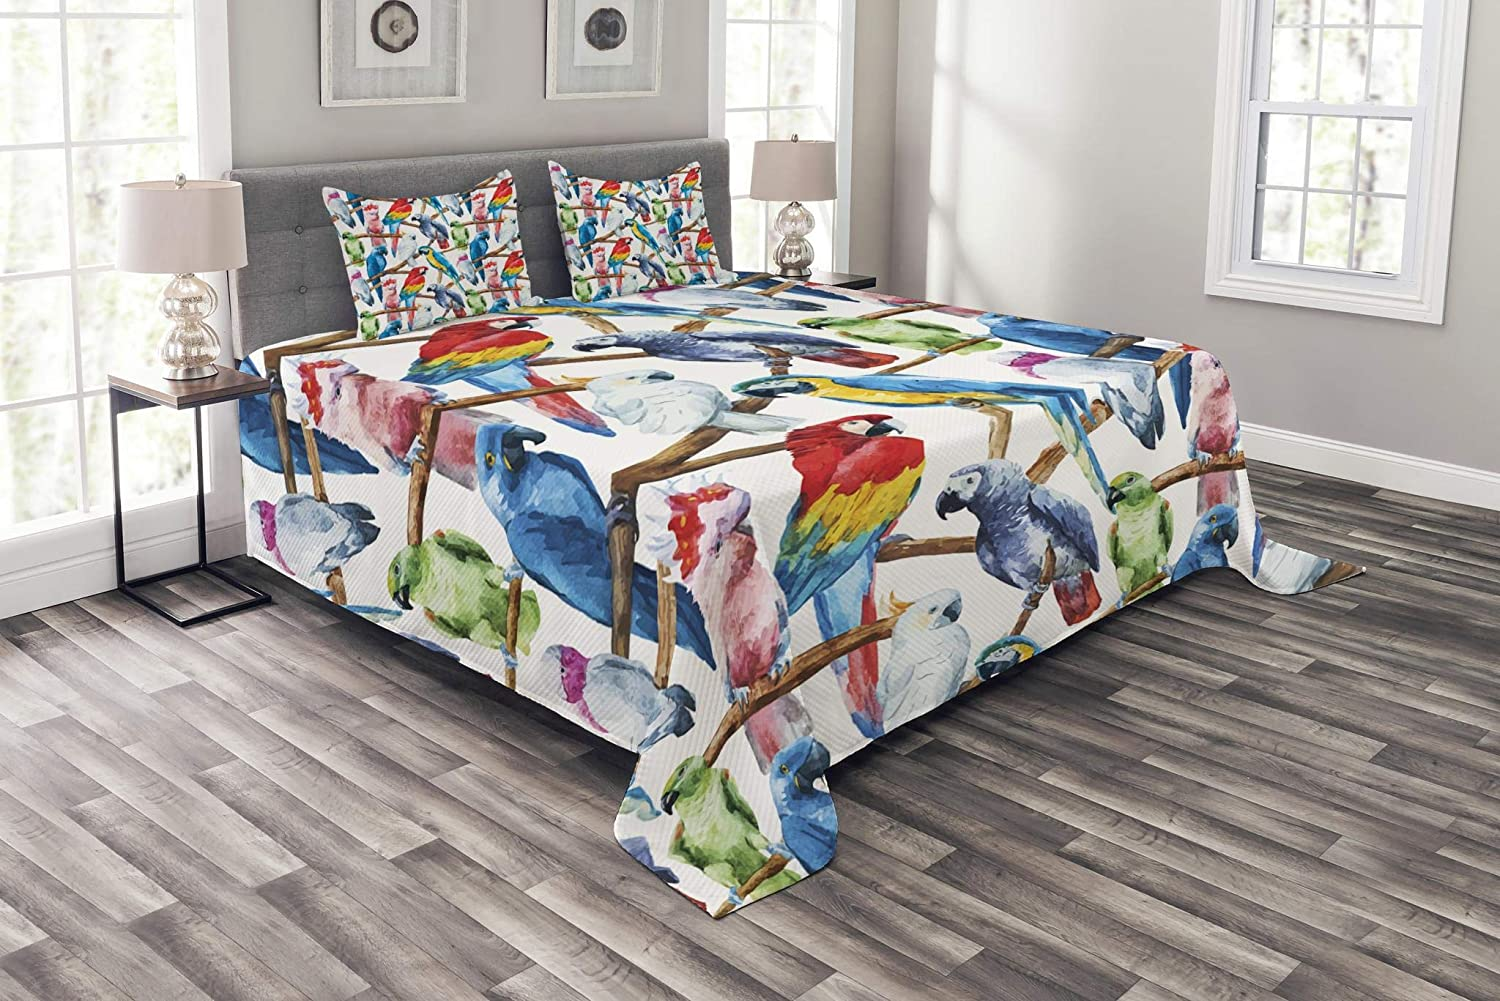 Lunarable Parrots Bedspread, Colorful Parrots on Tree Branches Exotic Jungle Theme Watercolor Painting Effect, Decorative Quilted 3 Piece Coverlet Set with 2 Pillow Shams, King Size, Cobalt Red